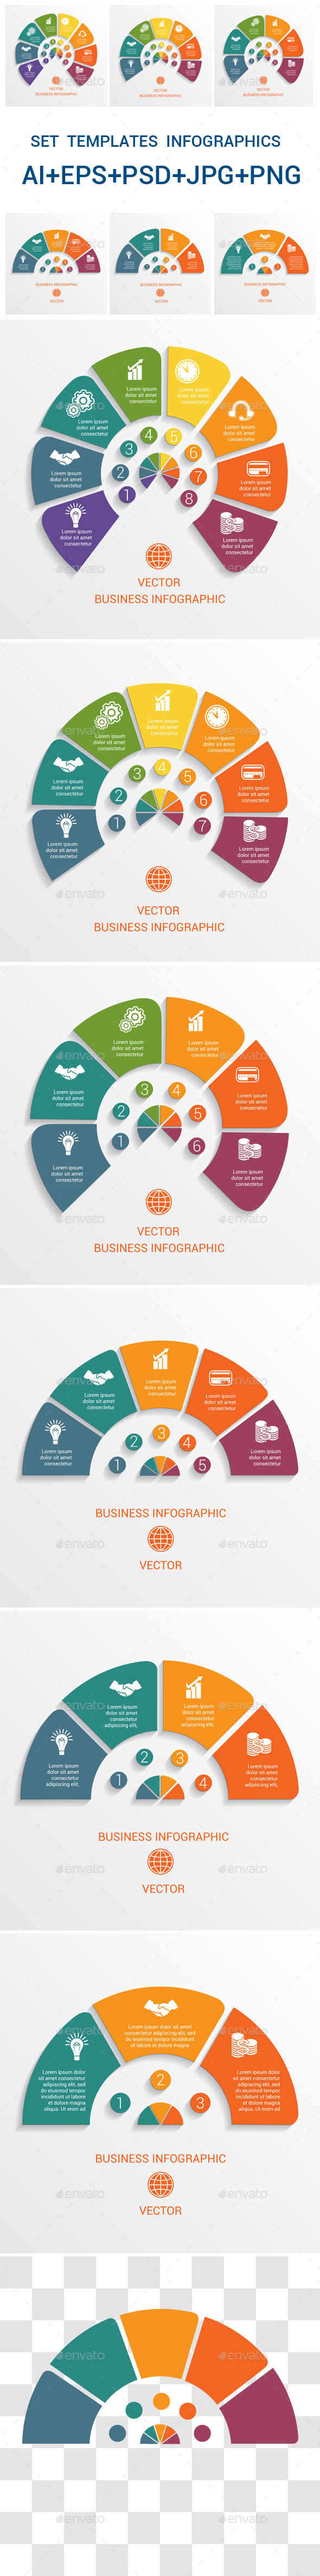 Data Elements For Template infographics 3,4,5,6,7,8, positions. - Infographics